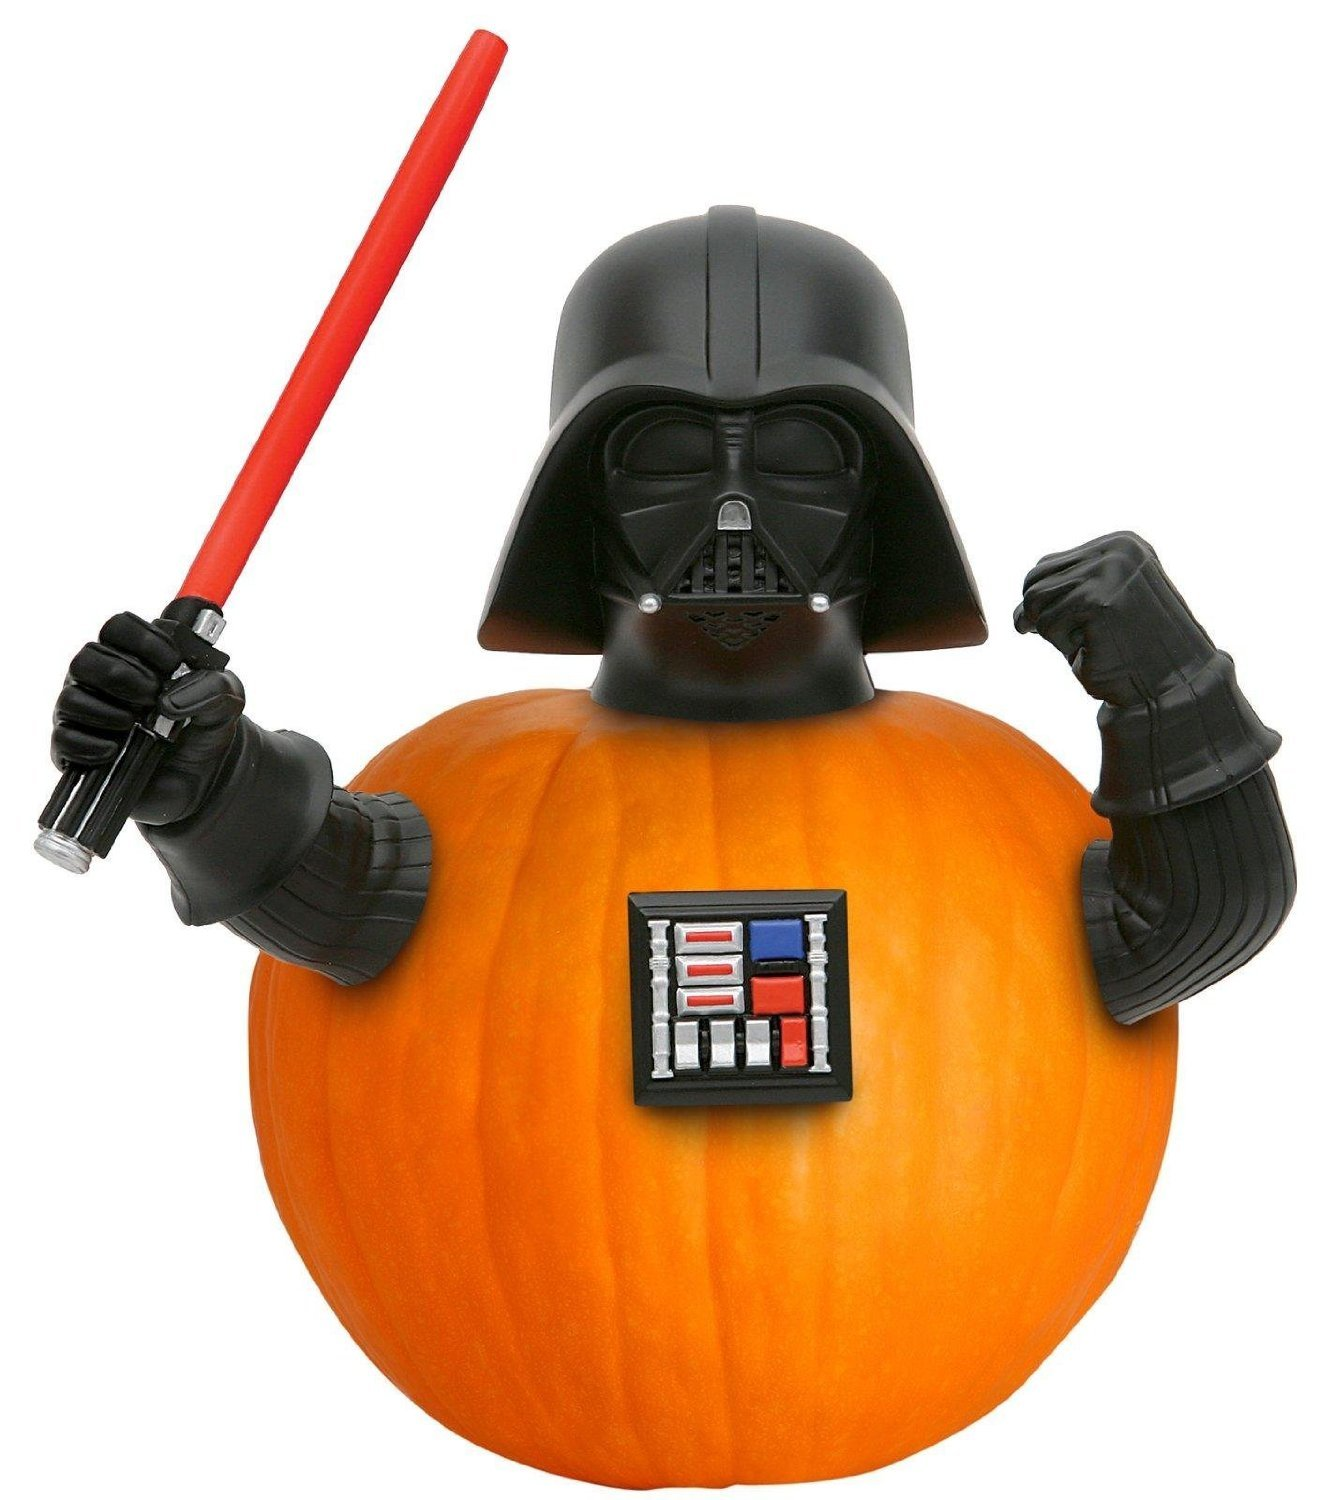 amazoncom star wars darth vader halloween pumpkin push ins outdoor decor patio lawn garden - Halloween Darth Vader